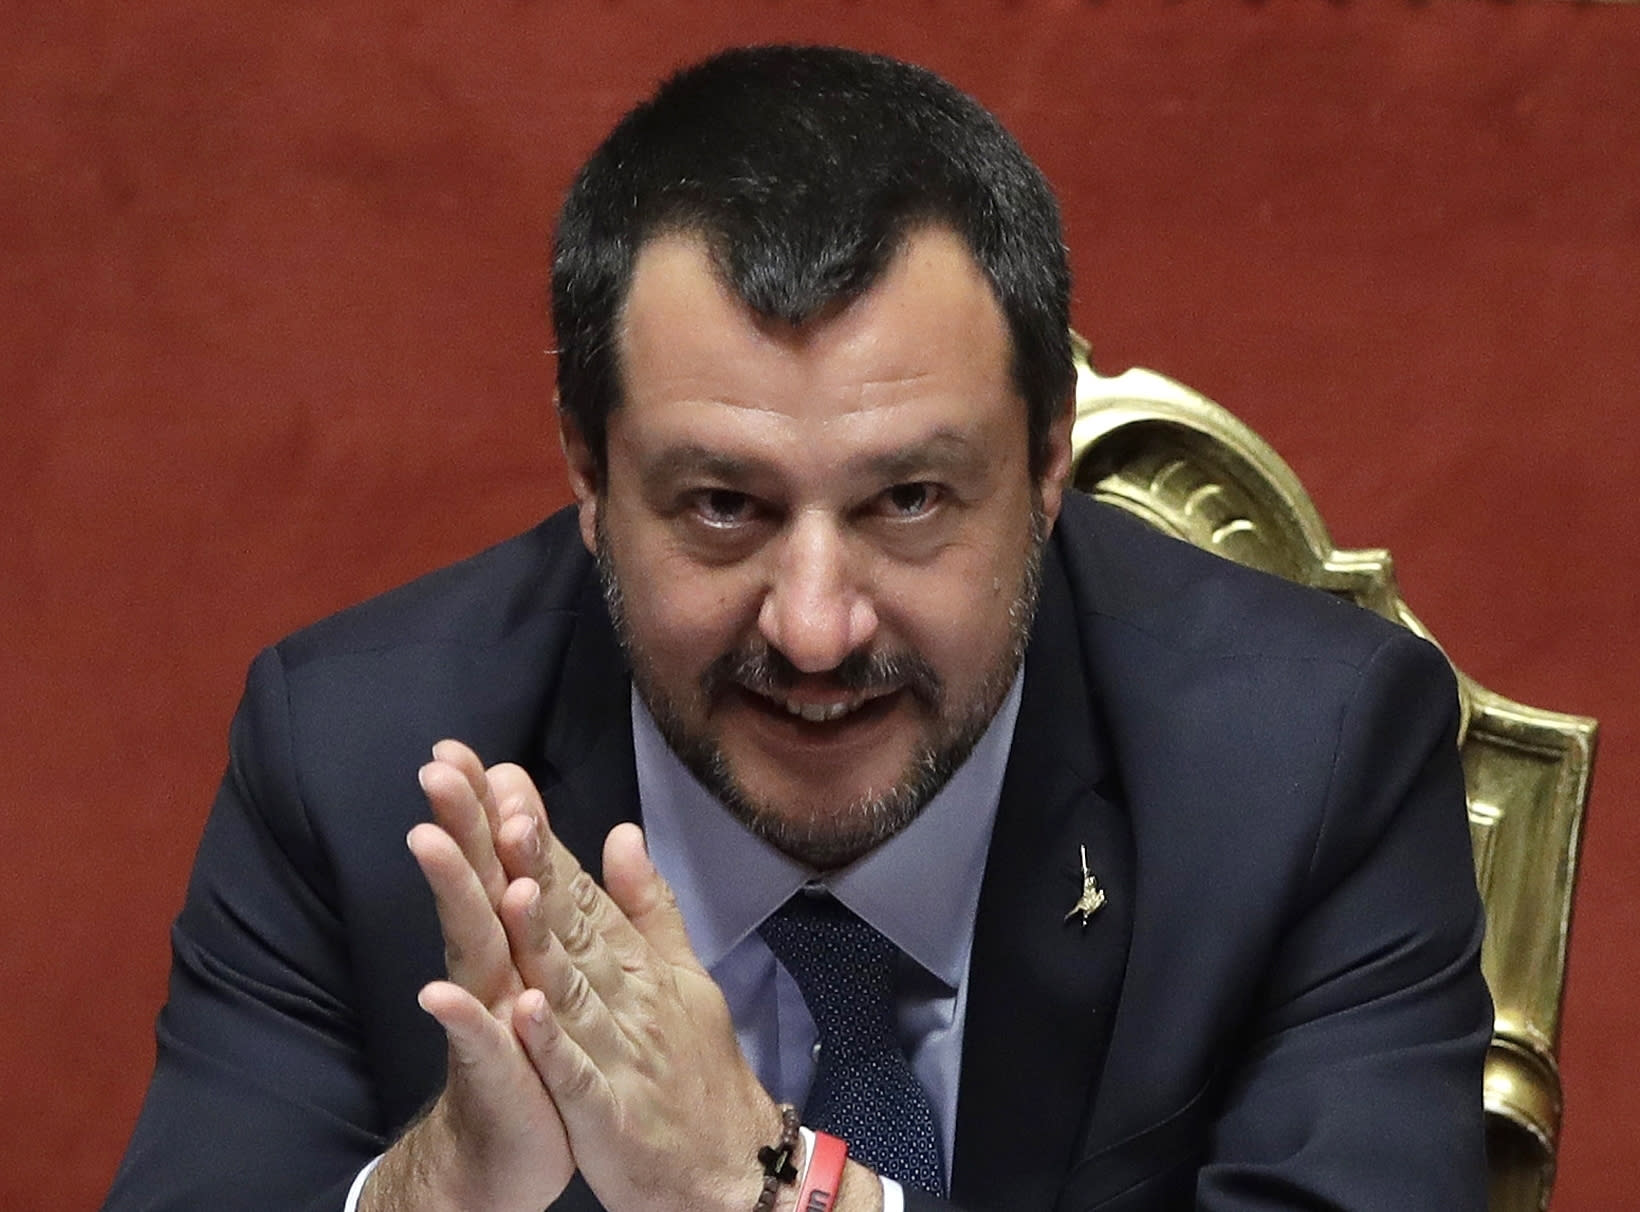 FILE - In this file photo dated Wednesday, March 20, 2019, Italian Interior Minister Matteo Salvini at the Italian Senate, in Rome. Migrants hijacked a cargo ship in Libyan waters on Wednesday March 27, 2019, and have forced the crew to reroute the vessel north toward Europe, and Italian Interior Minister Salvini said the ship, was carrying around 120 migrants, but Italian authorities vowed they would not allow it into their territorial waters. (AP Photo/Alessandra Tarantino, FILE)